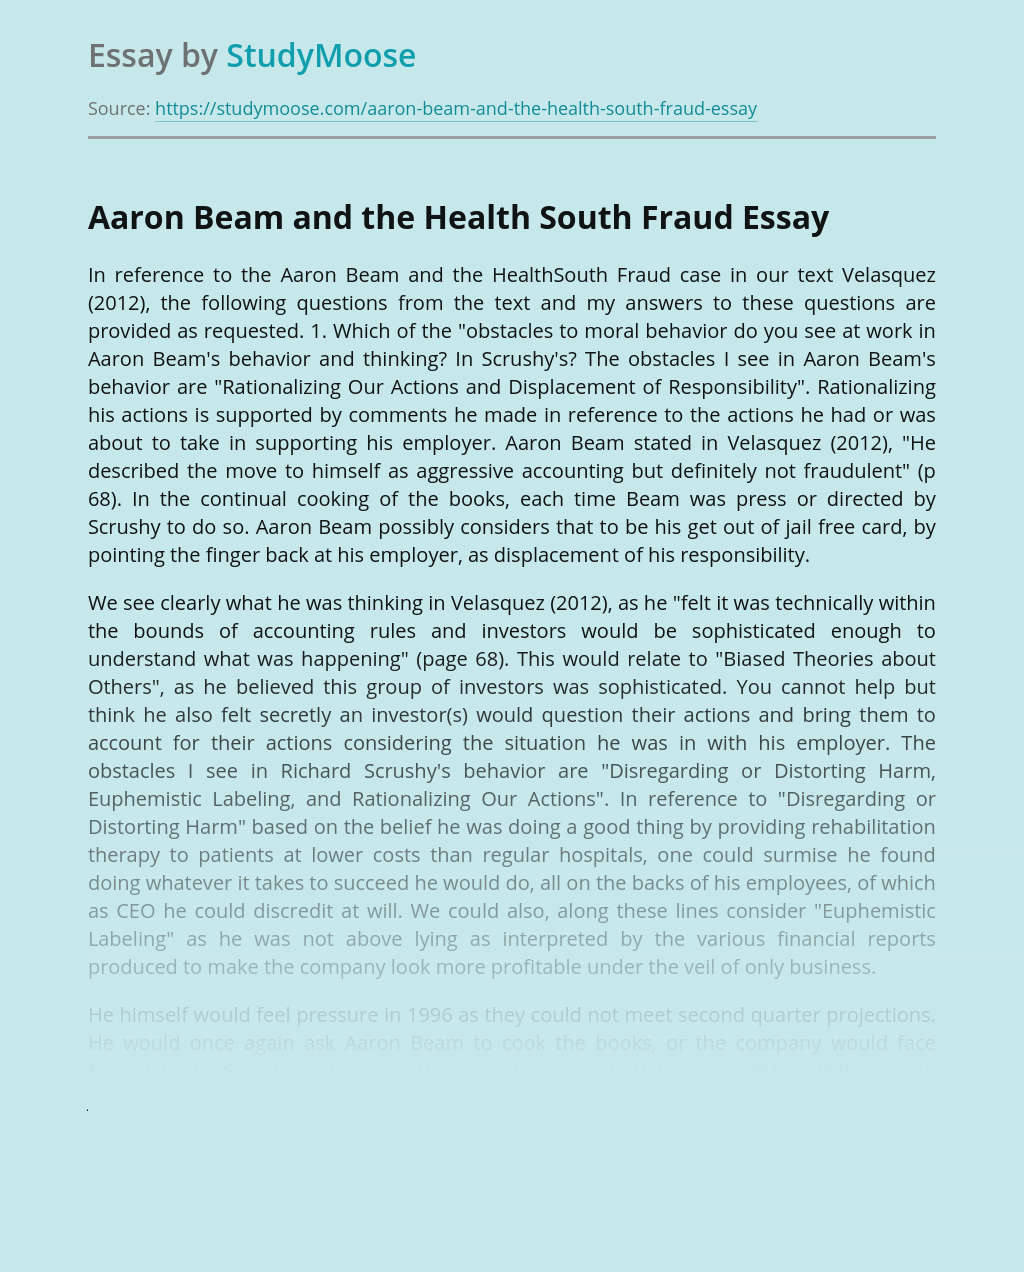 Aaron Beam and the Health South Fraud